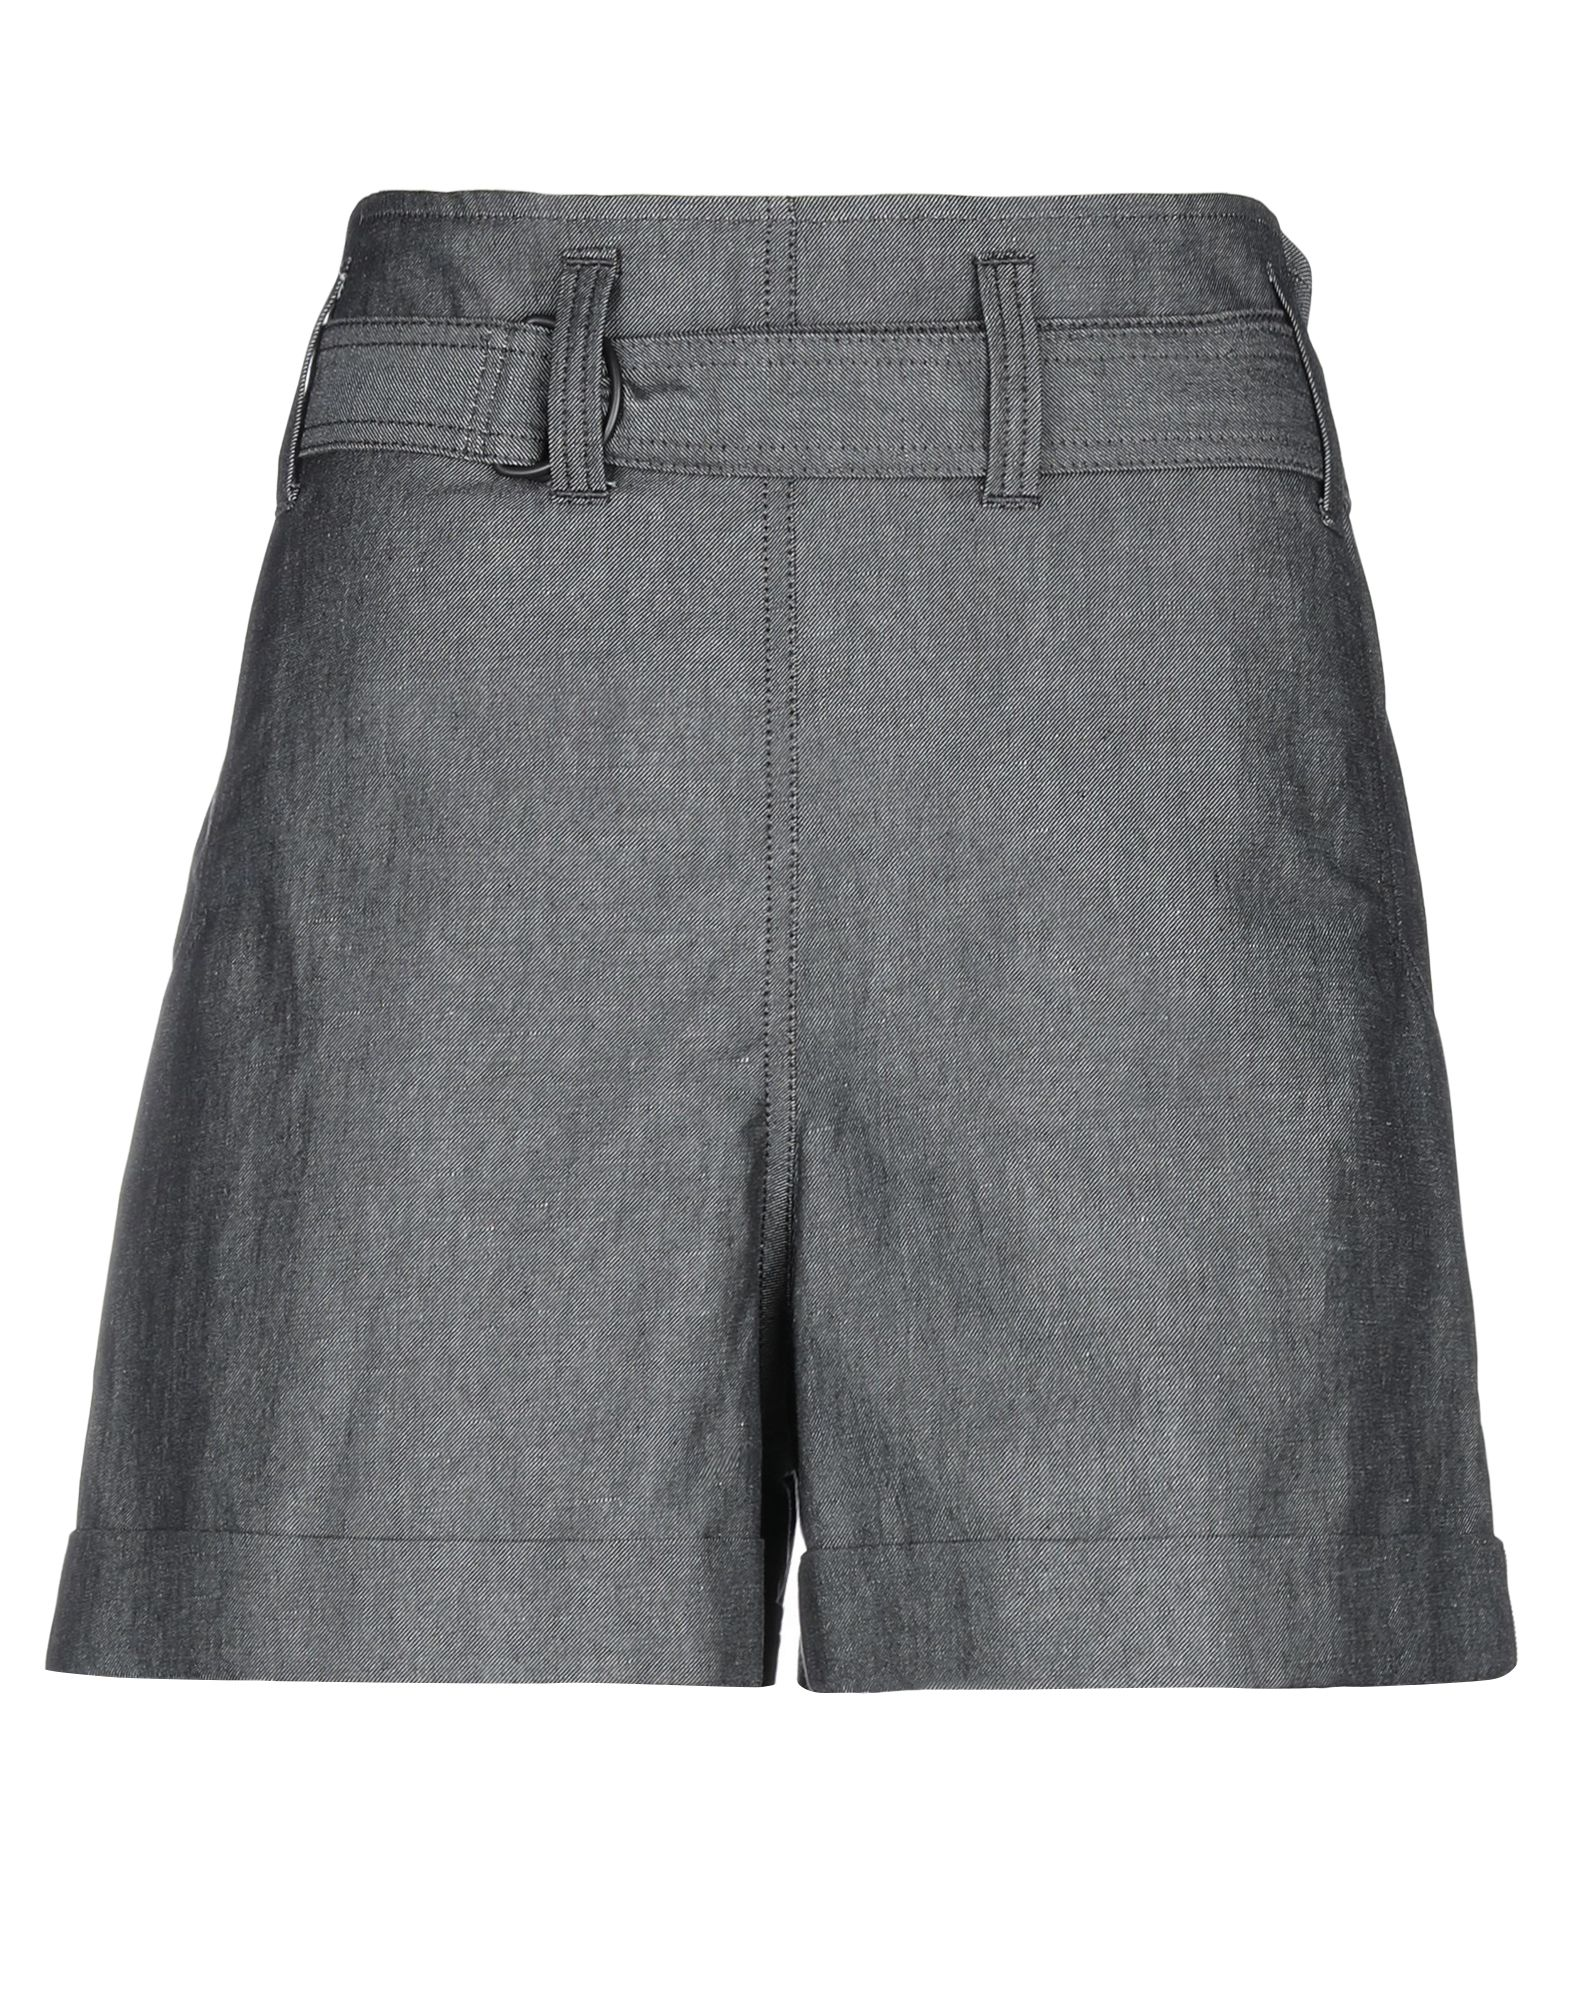 BRUNELLO CUCINELLI Shorts. plain weave, belt, side seam stripes, solid color, high waisted, regular fit, multipockets. 71% Cotton, 29% Flax